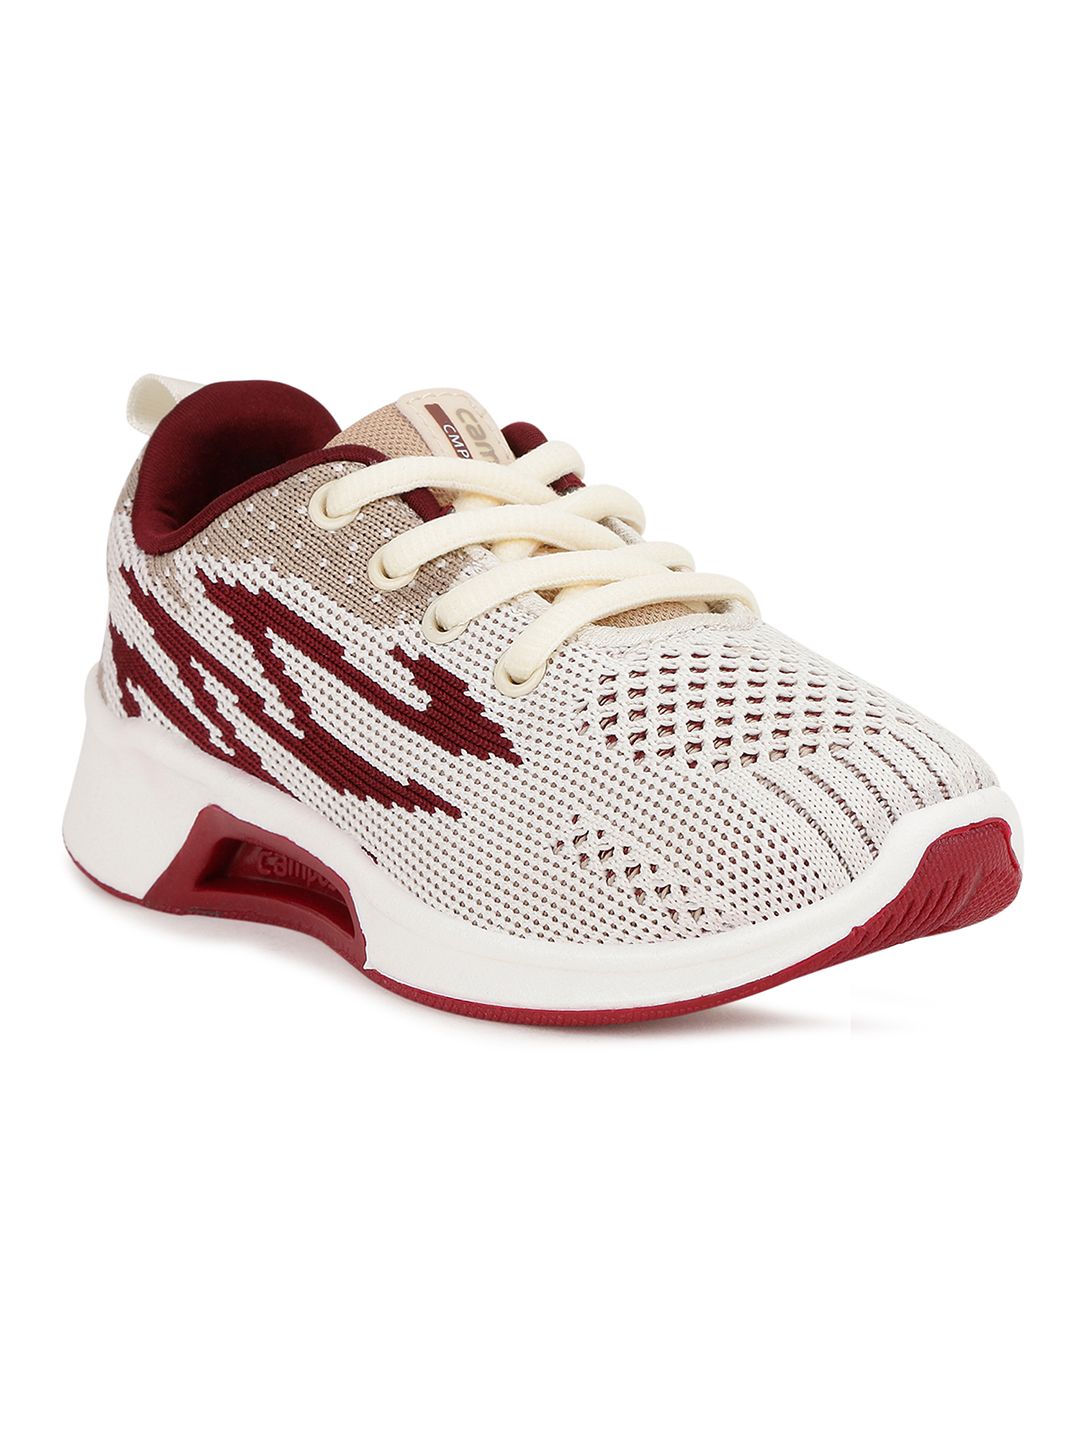 Campus Shoes   White Running Shoes